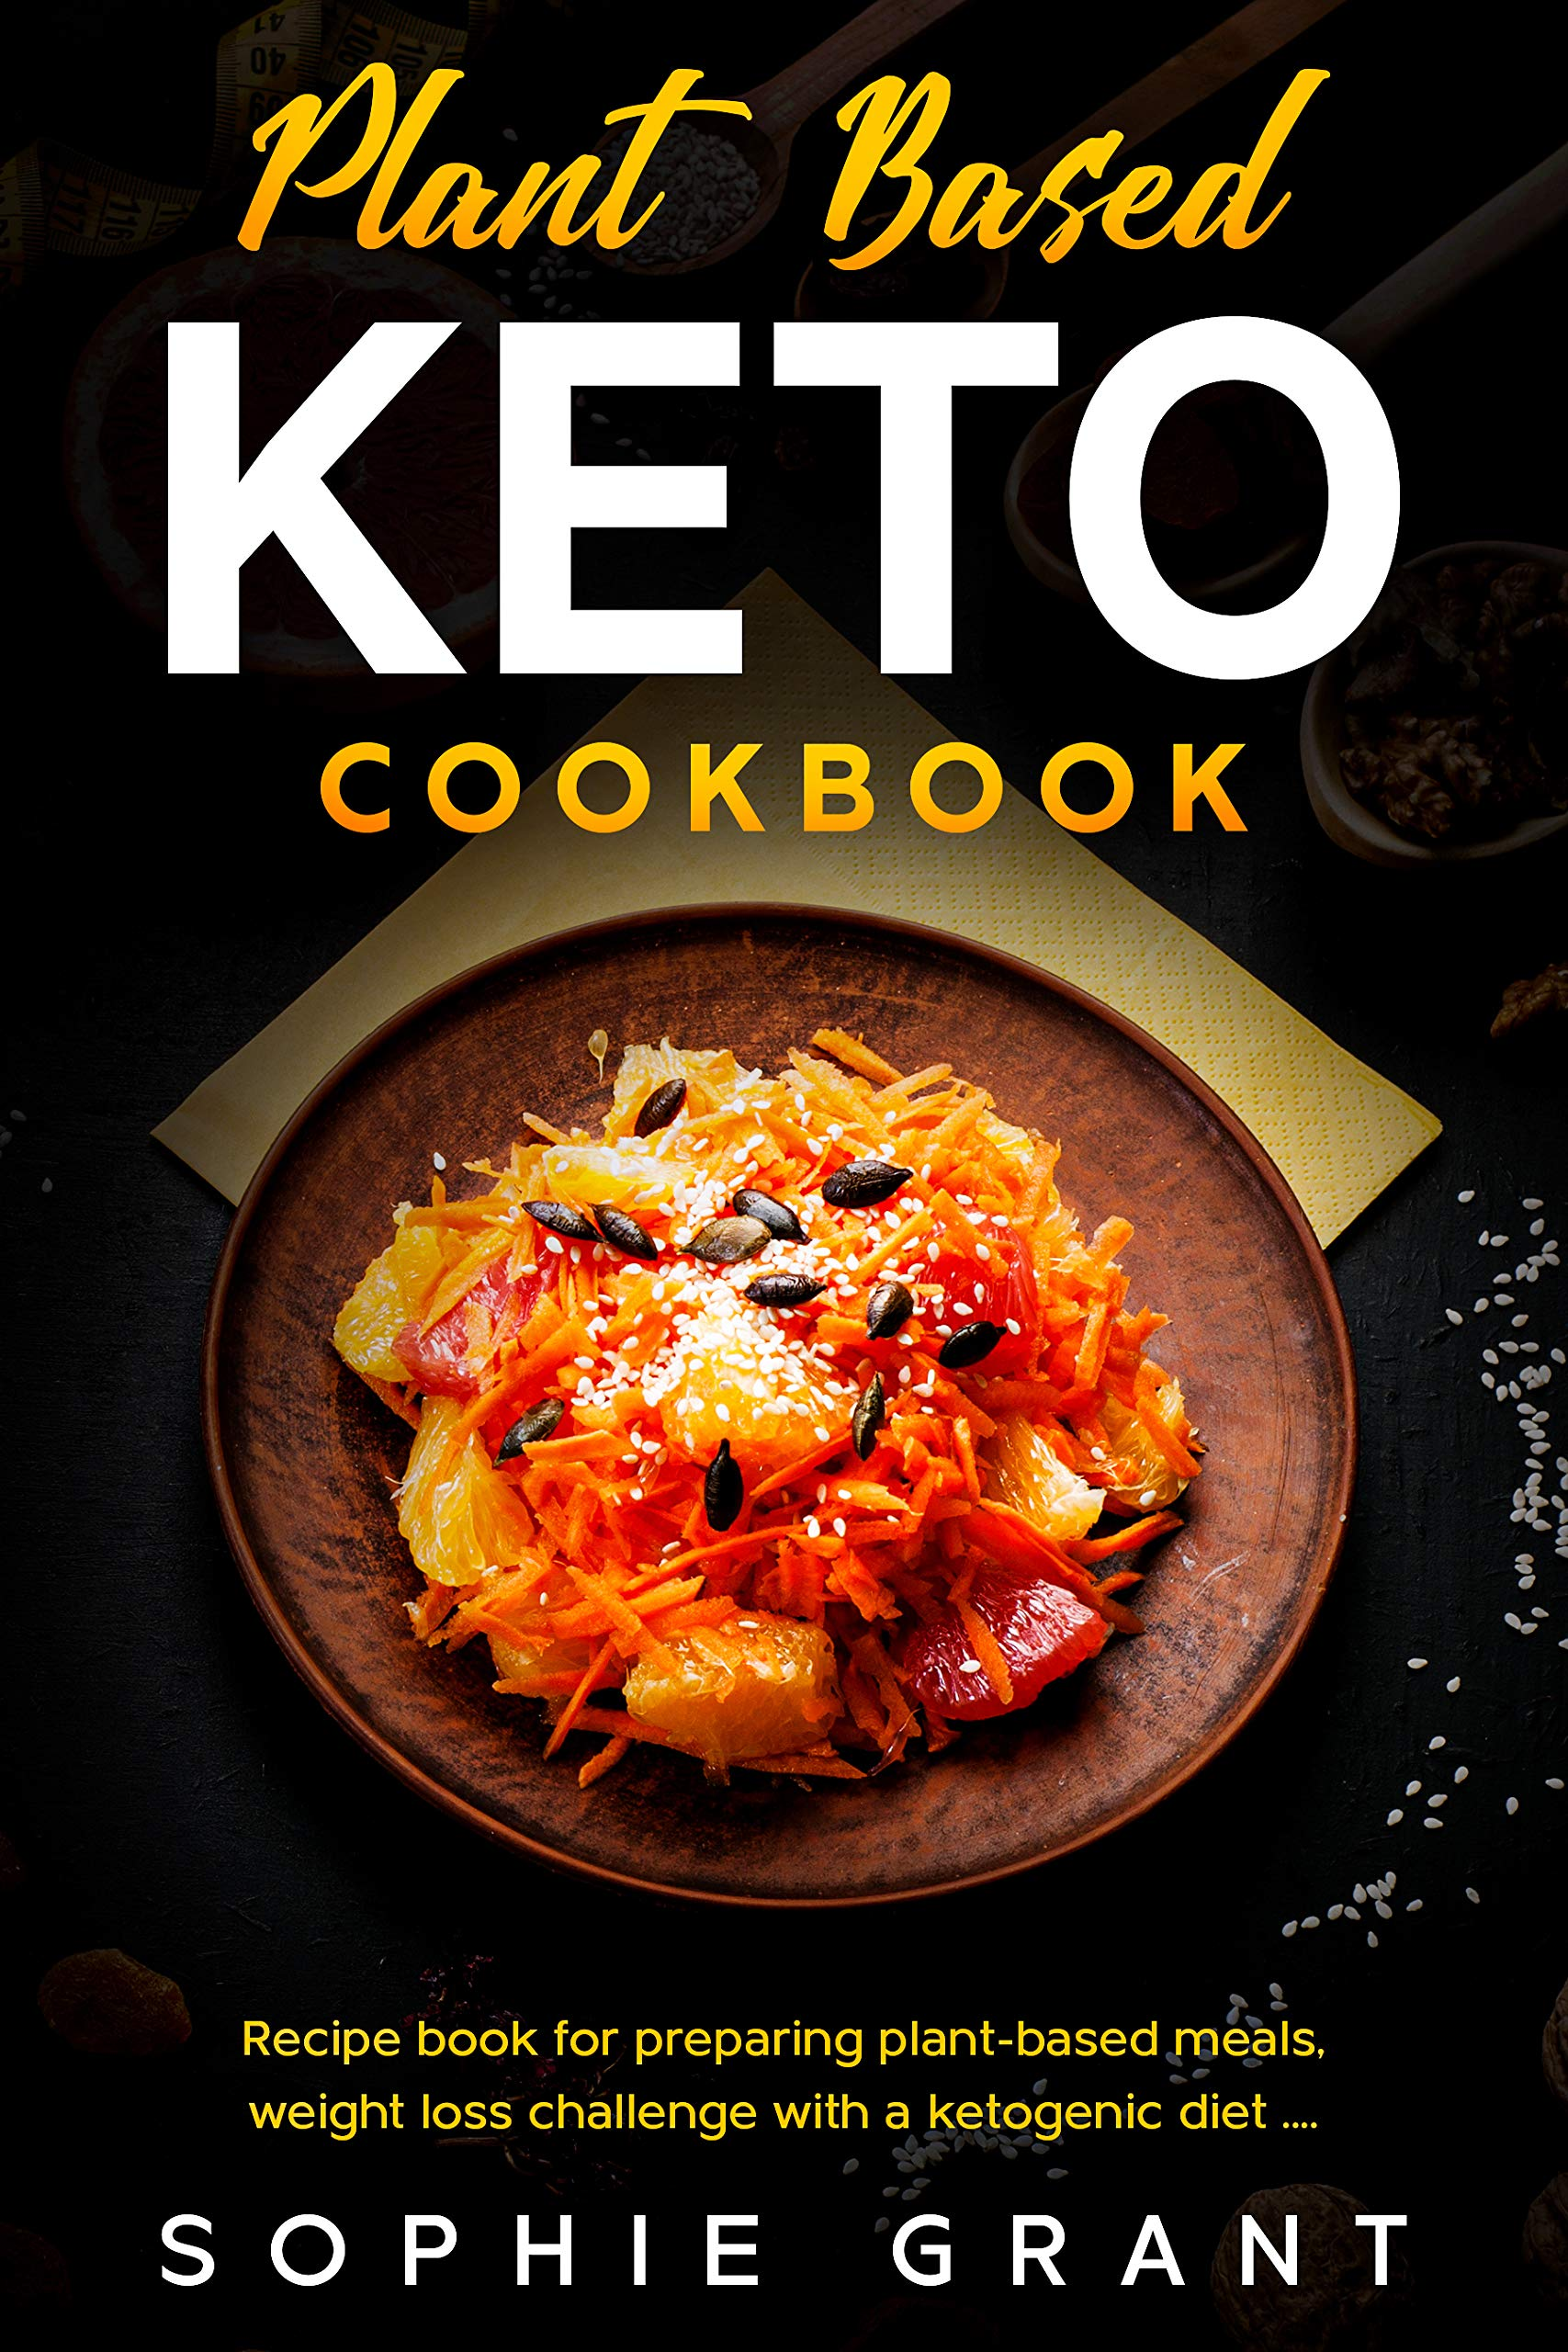 Plant Based Keto Cookbook: recipe book for preparing plant-based meals, weight loss challenge with a ketogenic diet ....